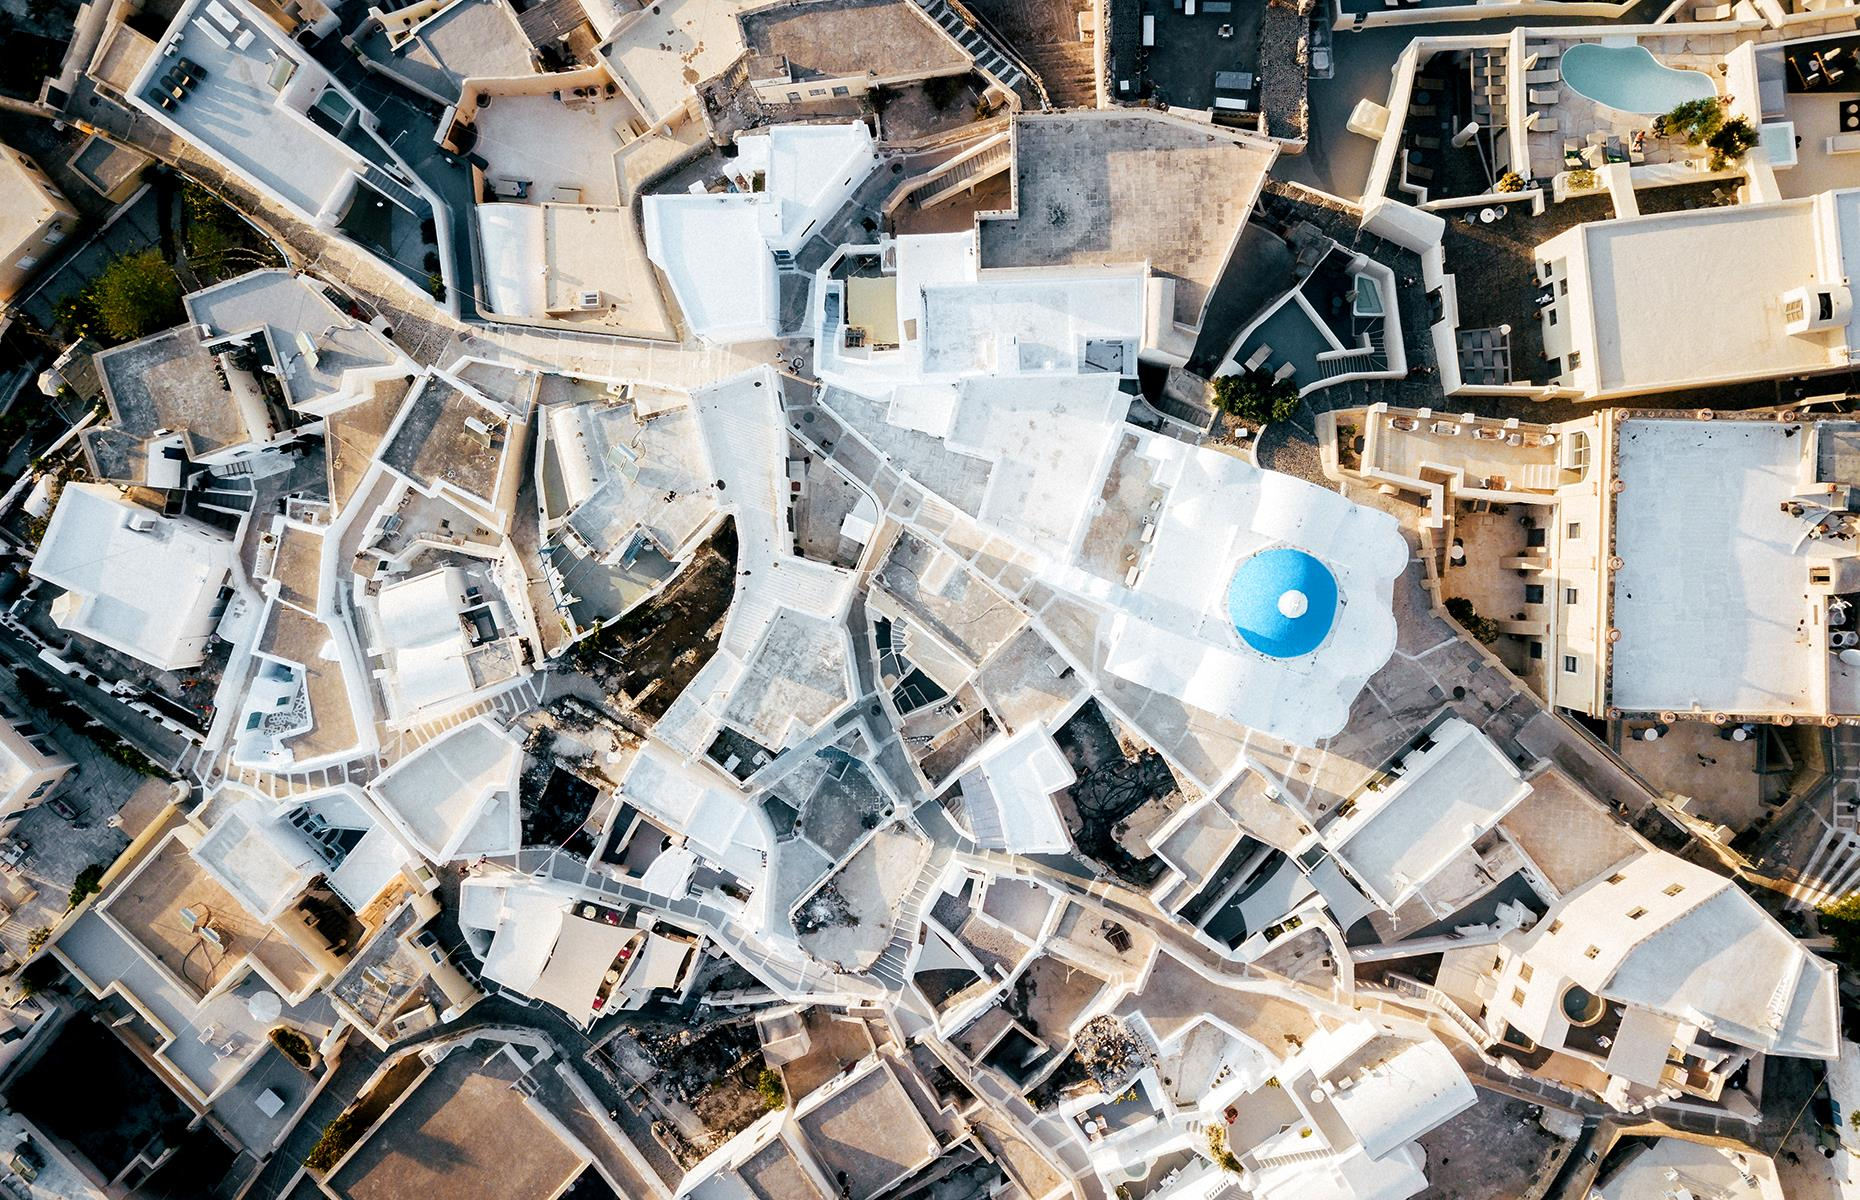 Slide 37 of 43: Santorini's sugar-cube buildings take on new life when seen from the air. Captured here is the village of Pyrgos Kallistis (better known as just Pyrgos) and the white-washed houses, labyrinthine passageways and contrasting blue domes appear like a geometric pattern.